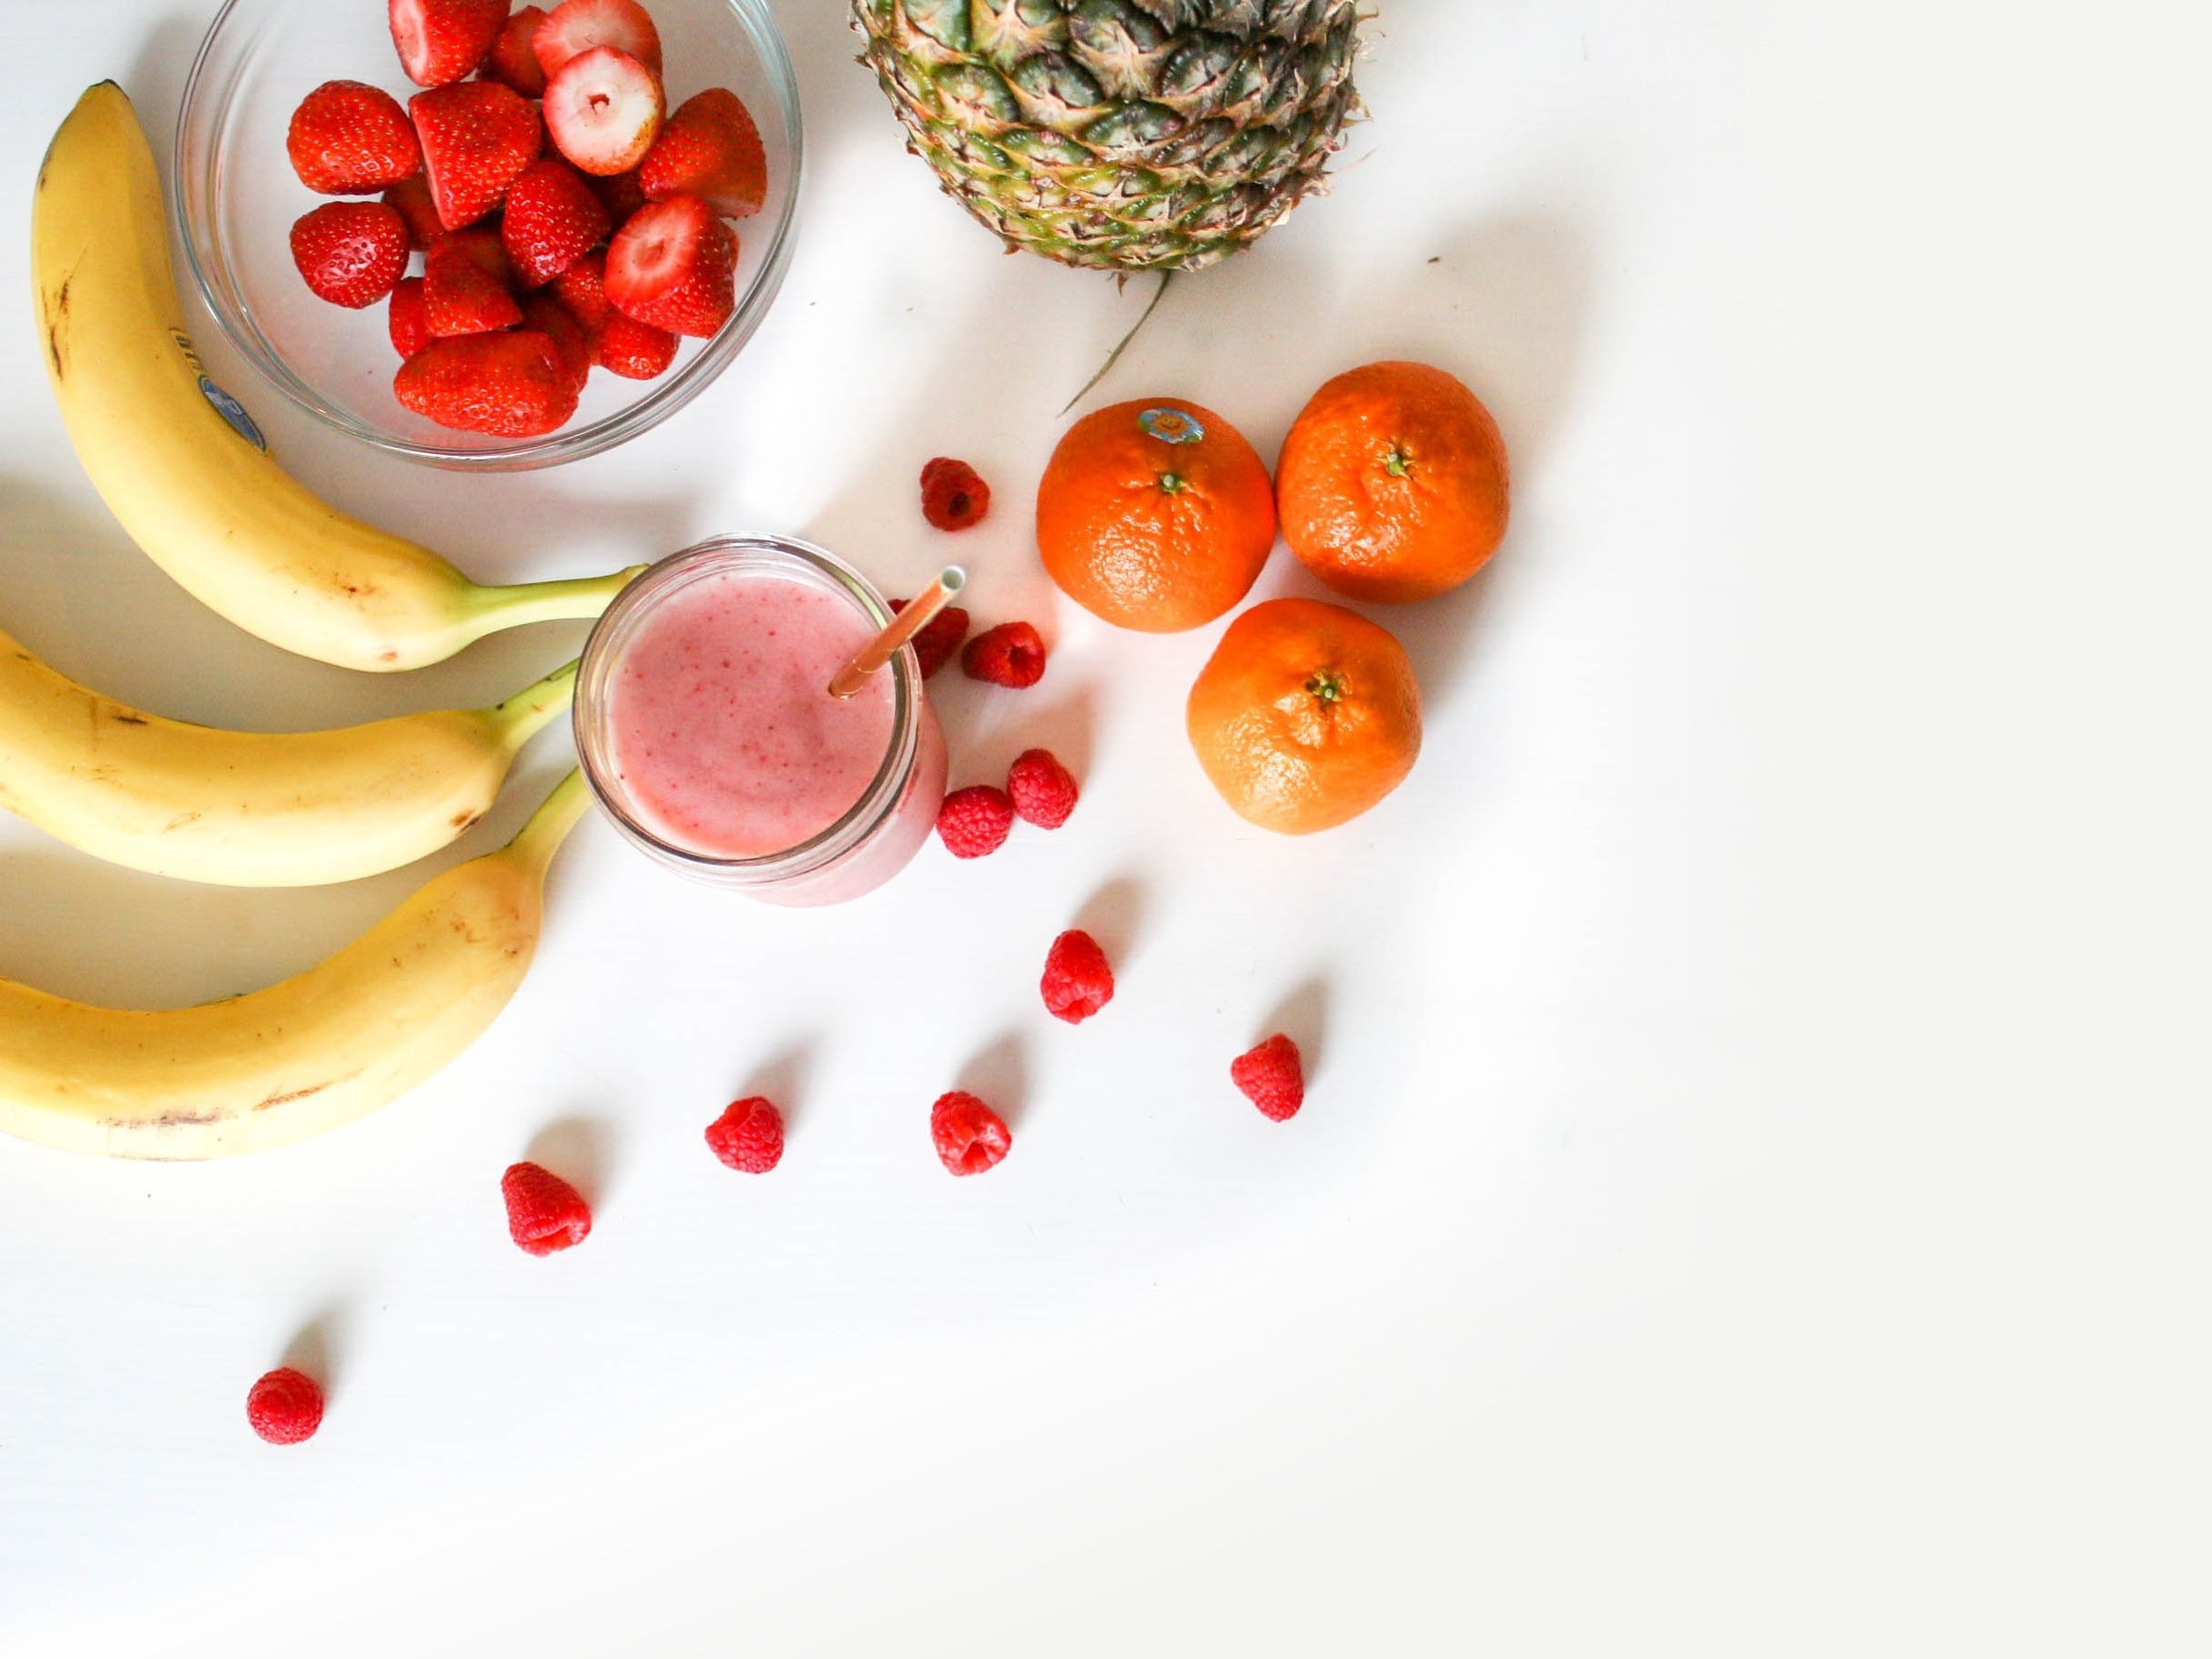 Comprehensive Nutritional Assessment - Tailor a nutritional and wellbeing plan bespoke to you through one-to-one assessment.